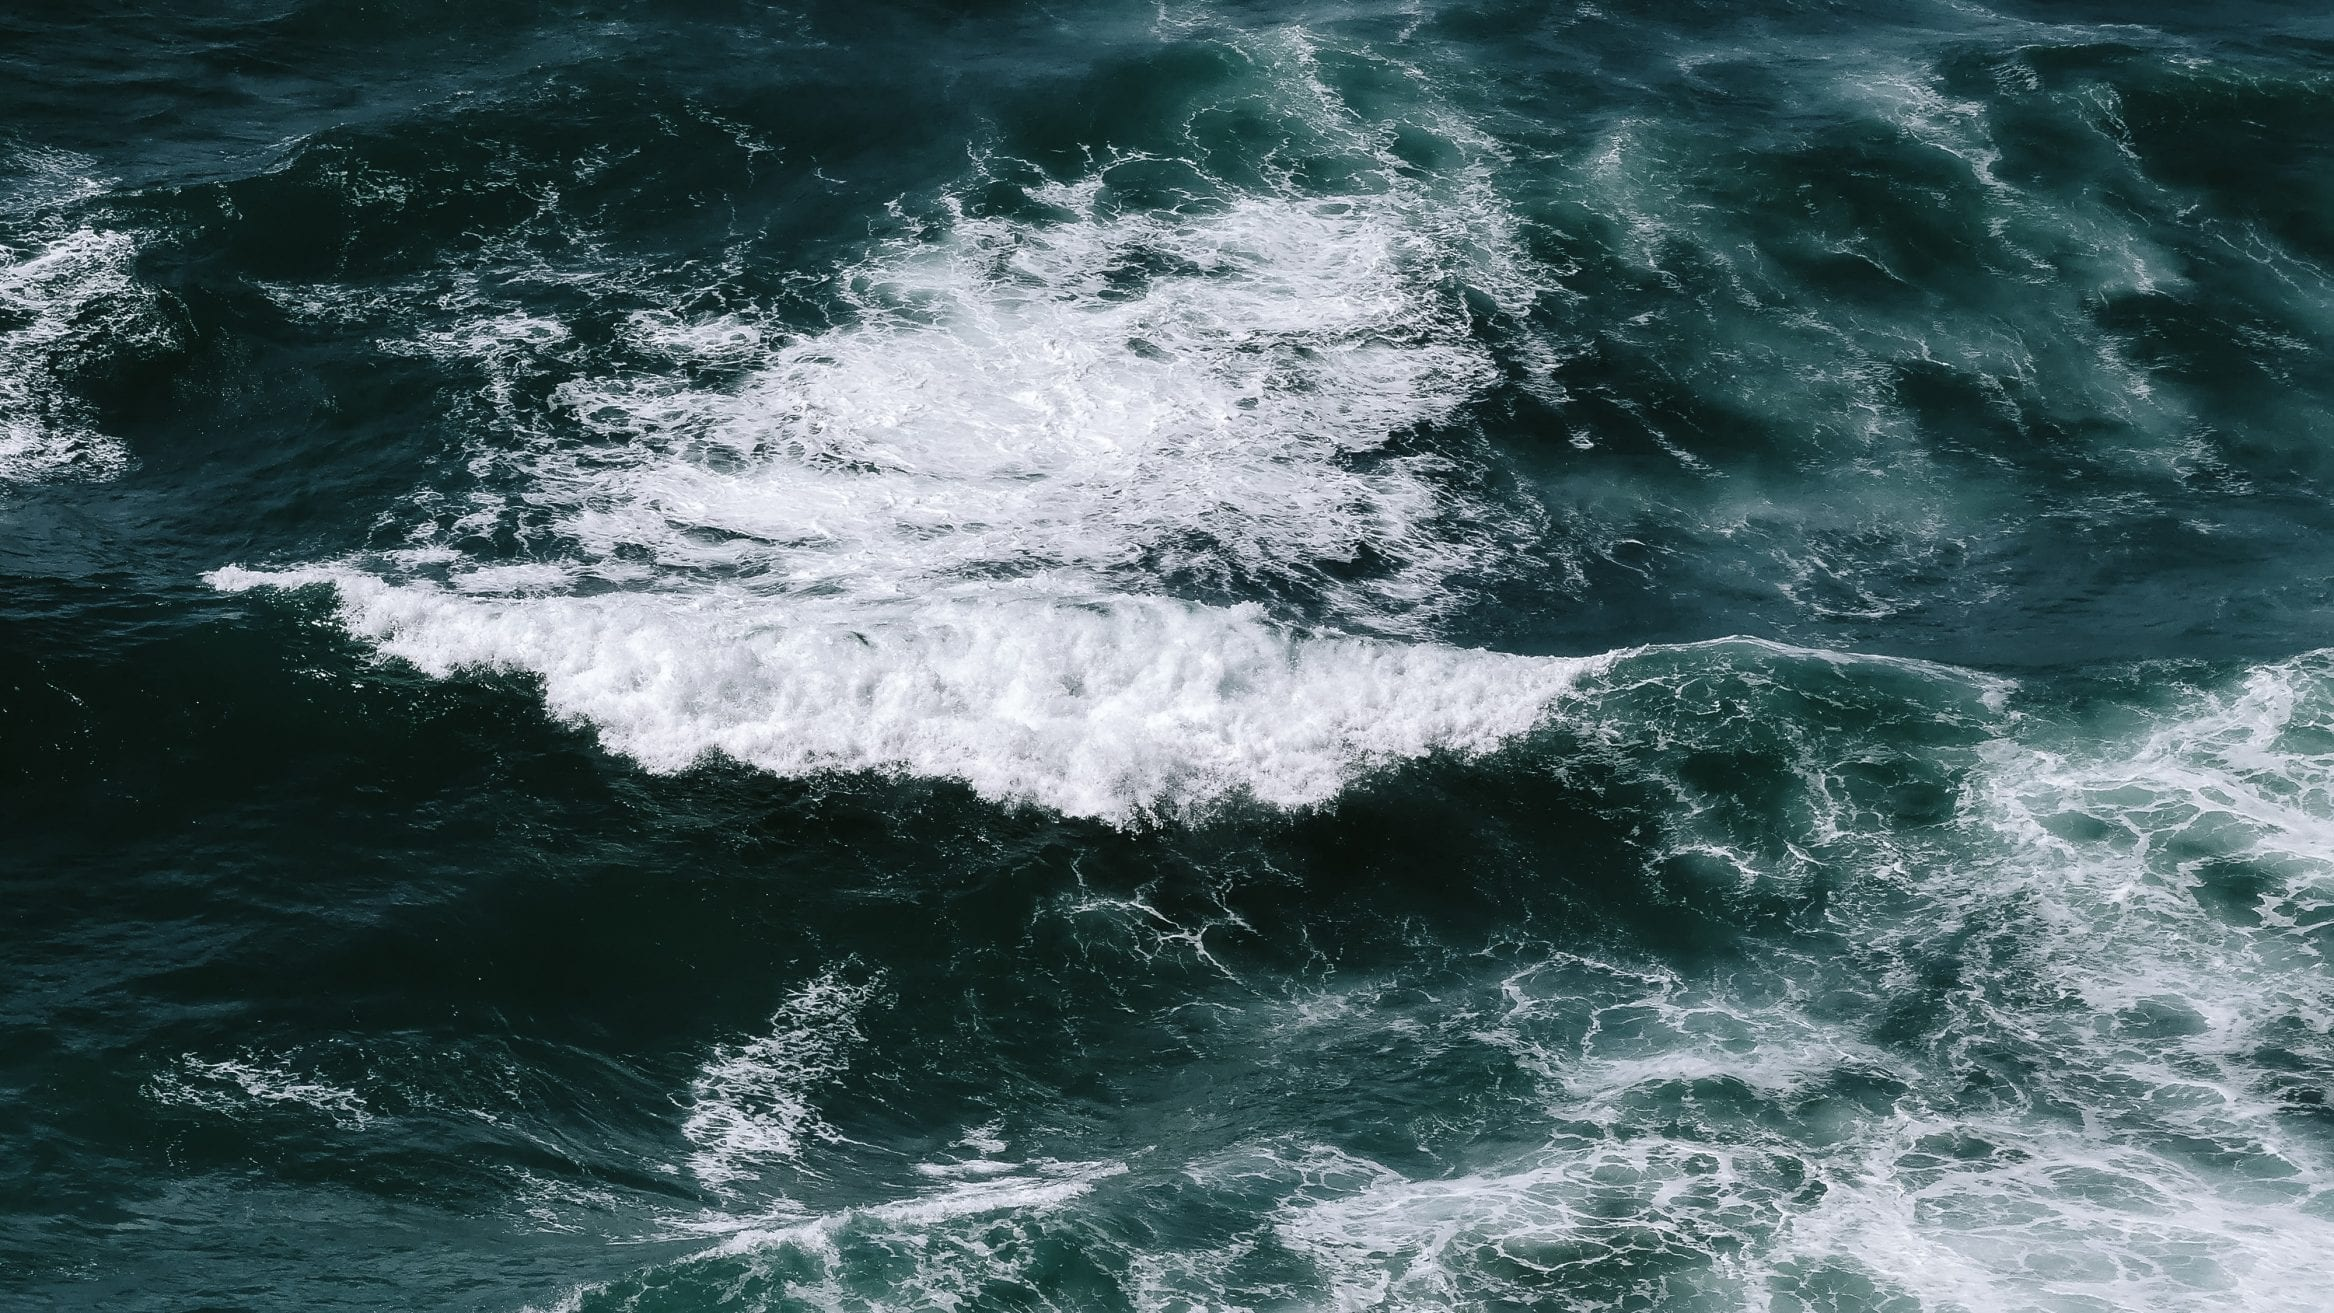 A new study into oceanic kinetic energy has found evidence to suggest thatglobal ocean circulation has accelerated during the past two decades.